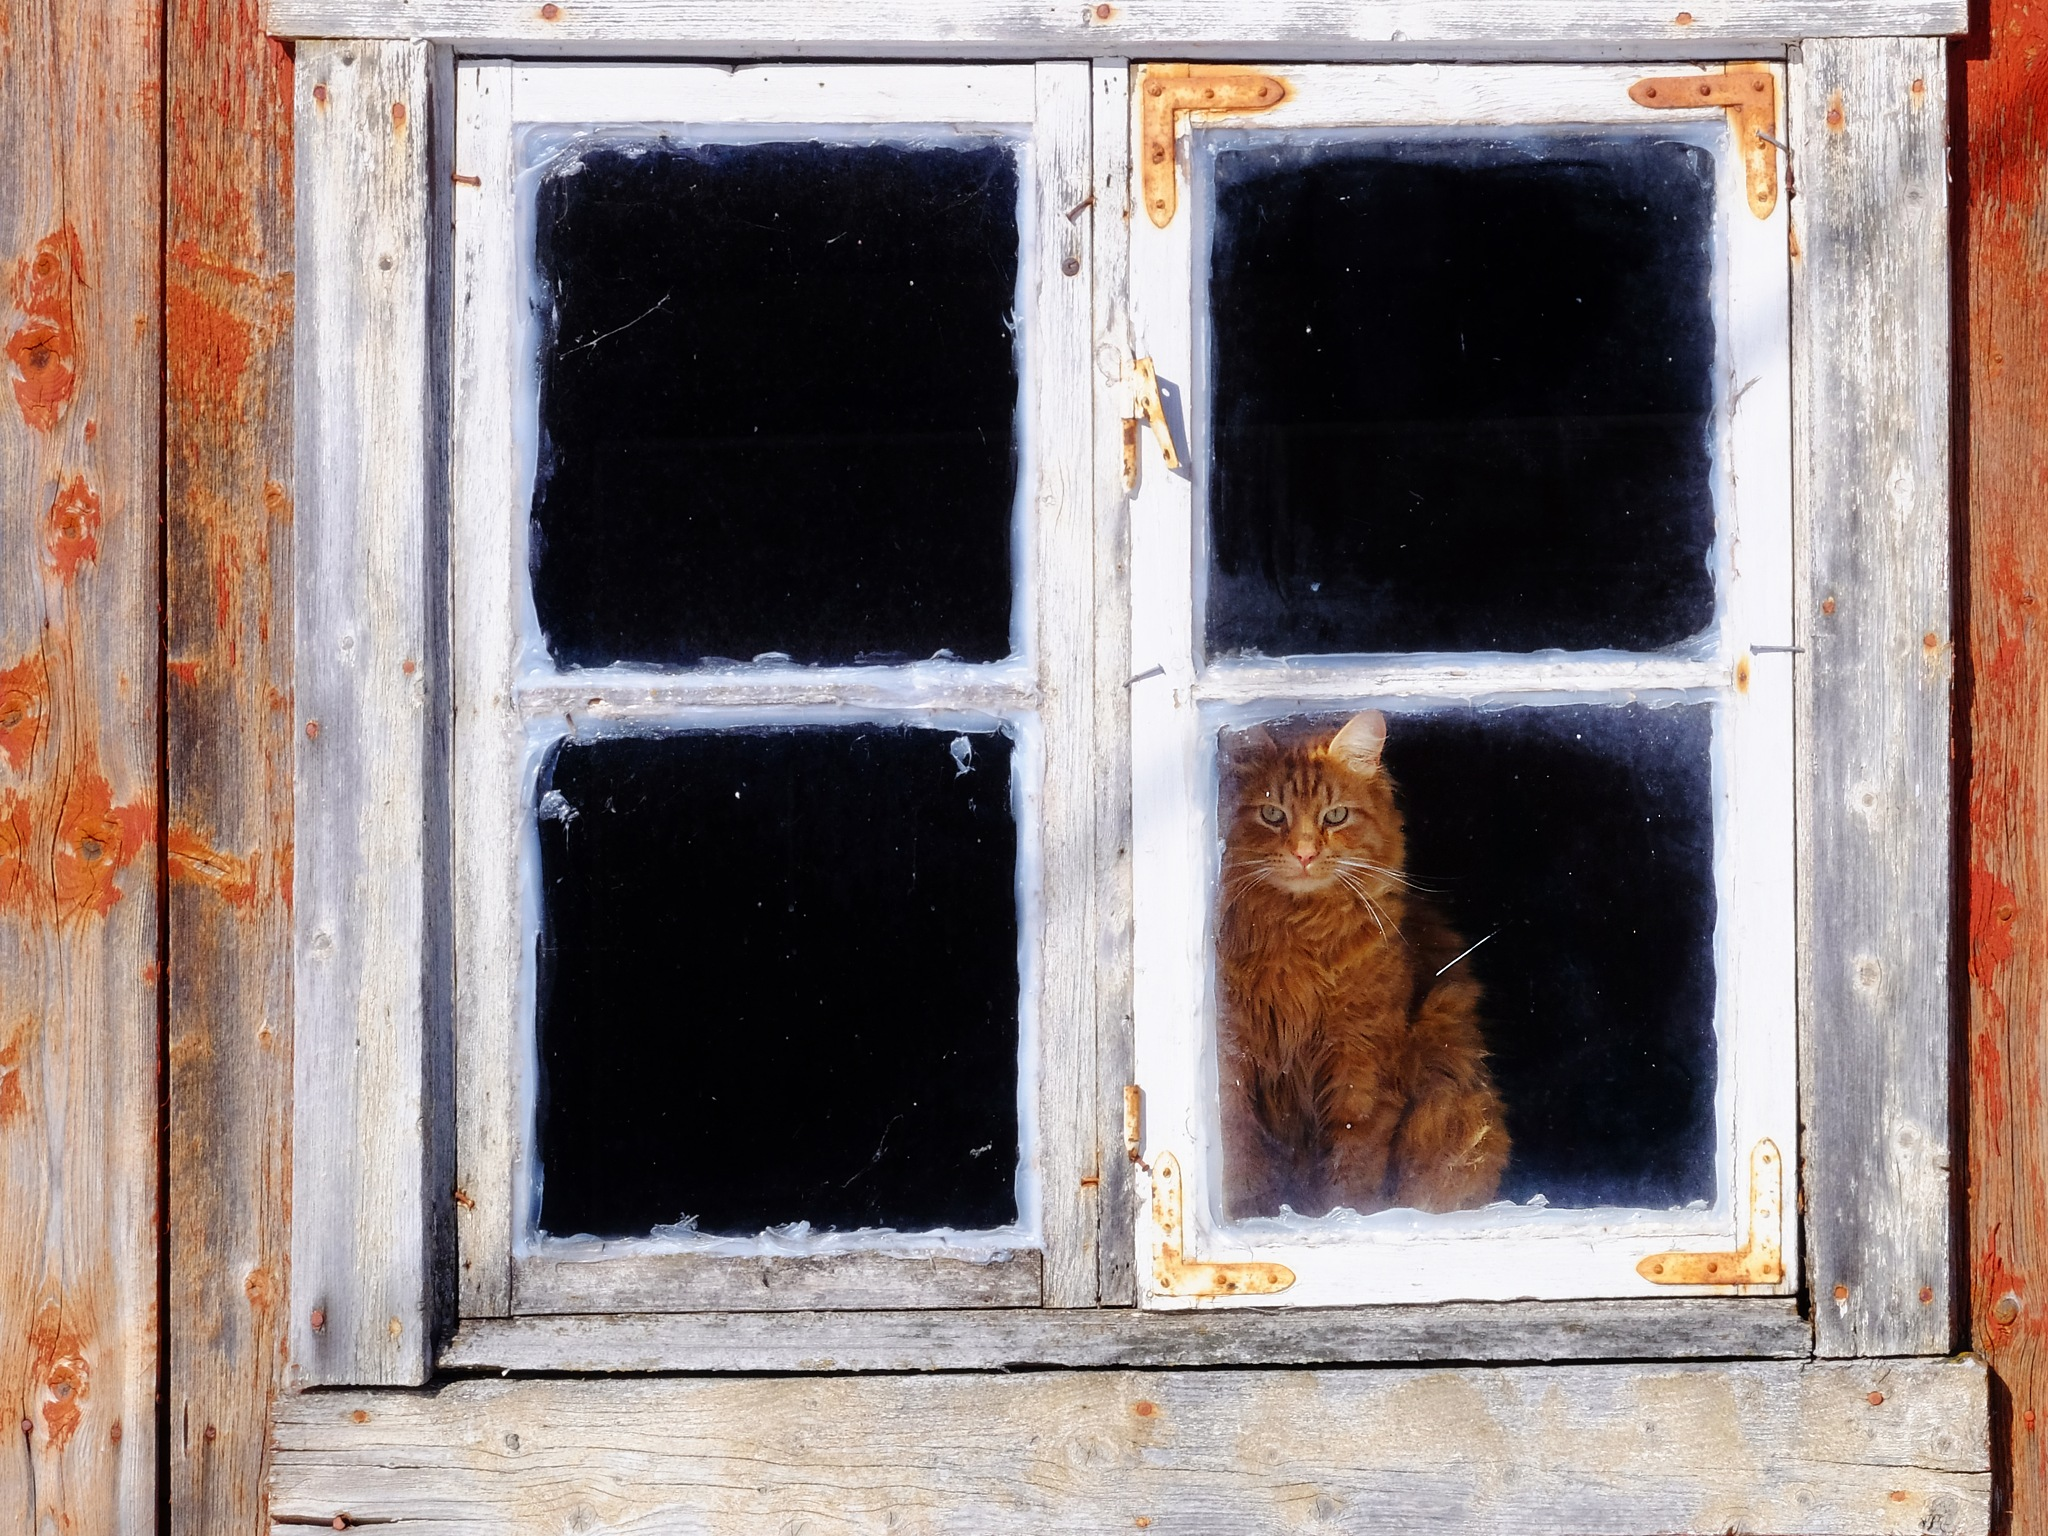 Cat in the old barn window by Jan Arvid Solem